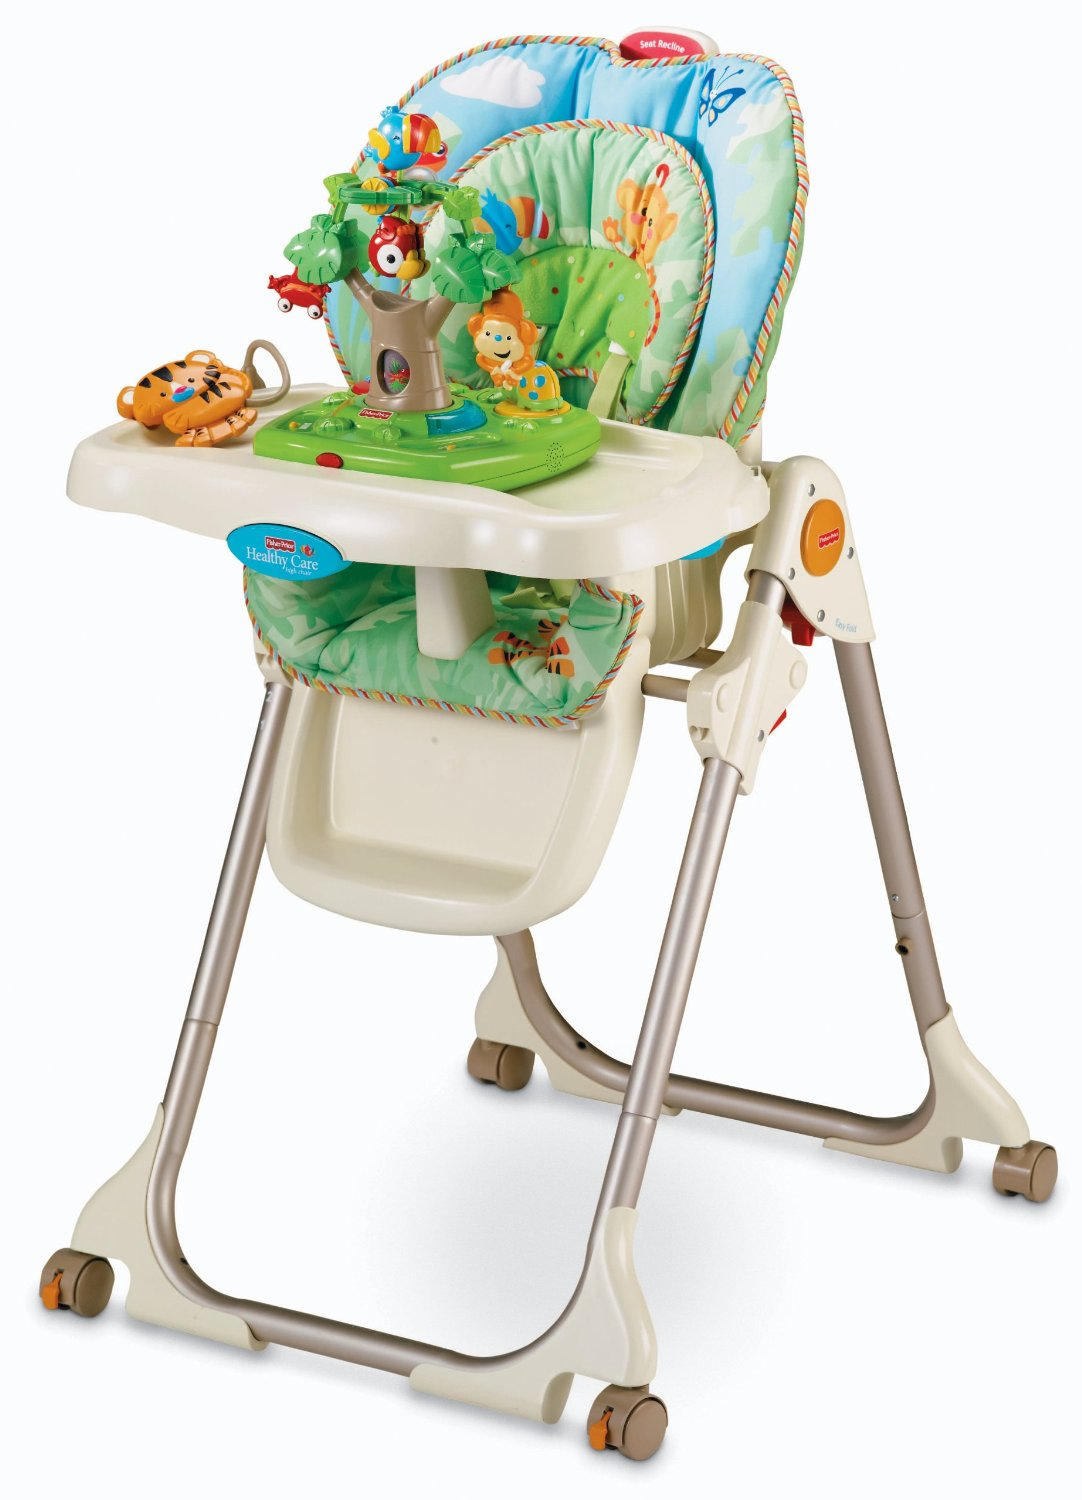 toddler high chair booster seat cover rentals albuquerque approved the best chairs and seats